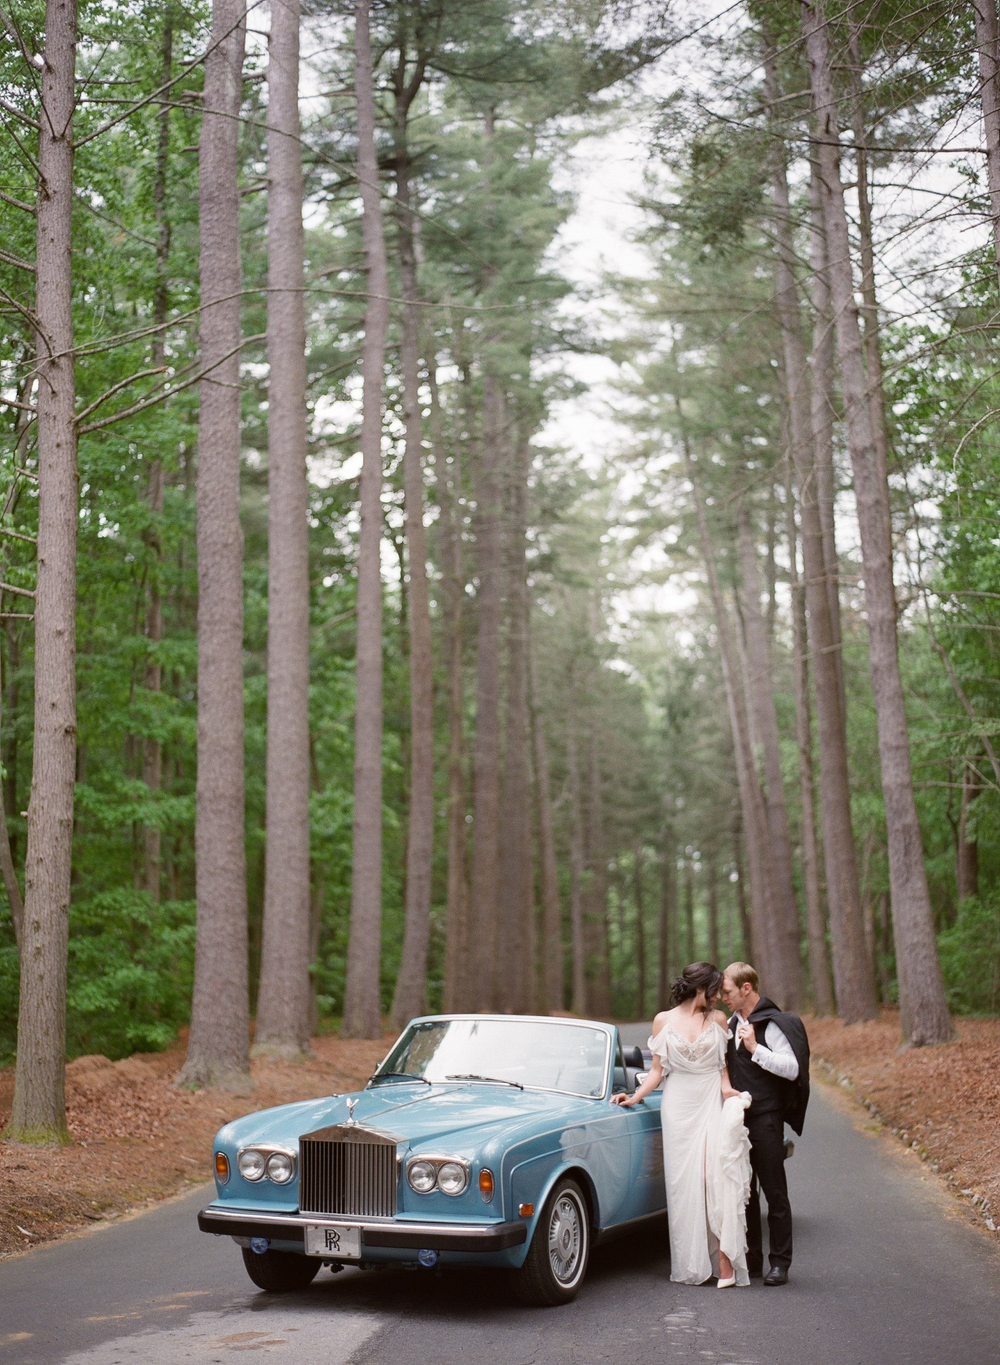 Sable and Gray Styled Shoot Photo by Almond Leaf Studios